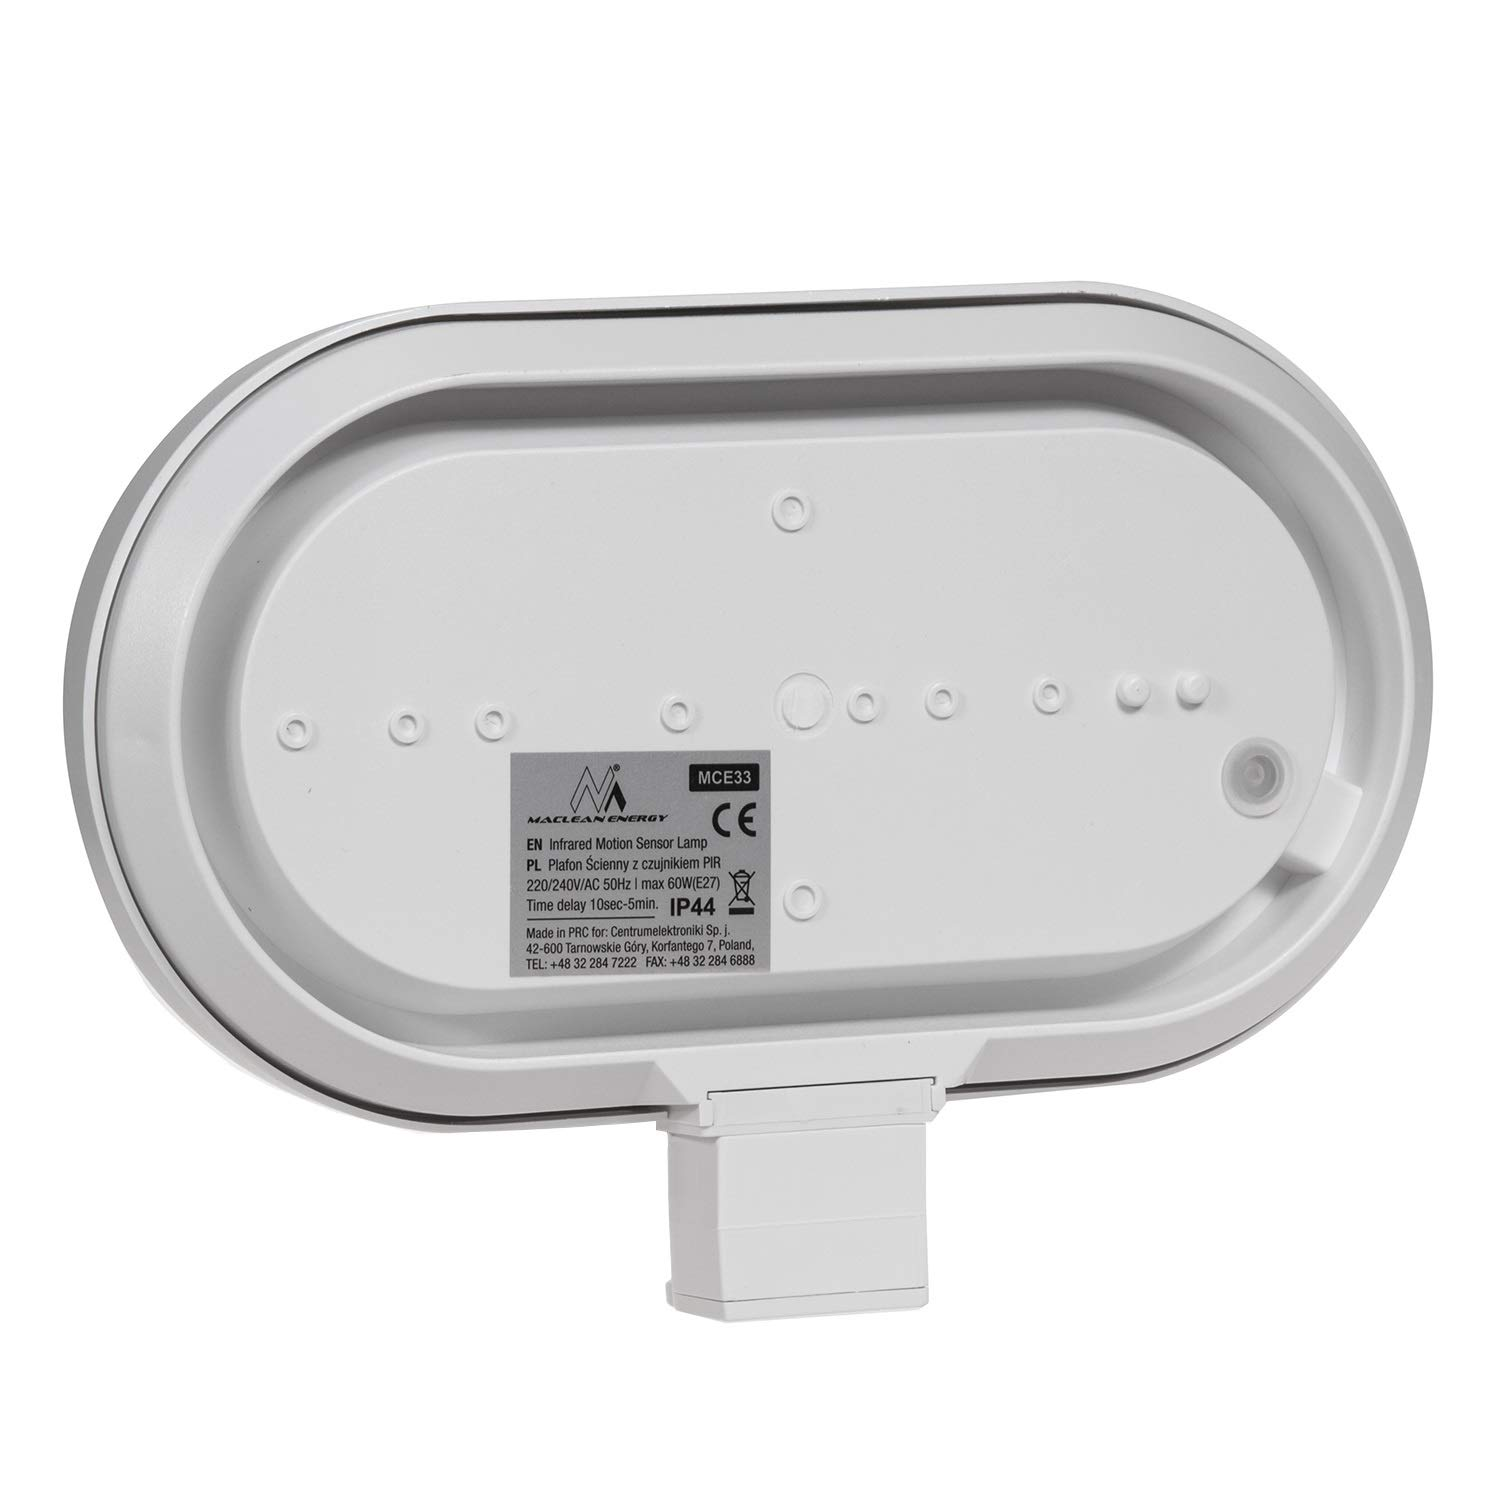 Maclean - Energy mce33 - Aplique de Pared con Detector de Movimiento 180° Sensor de luz: Amazon.es: Hogar